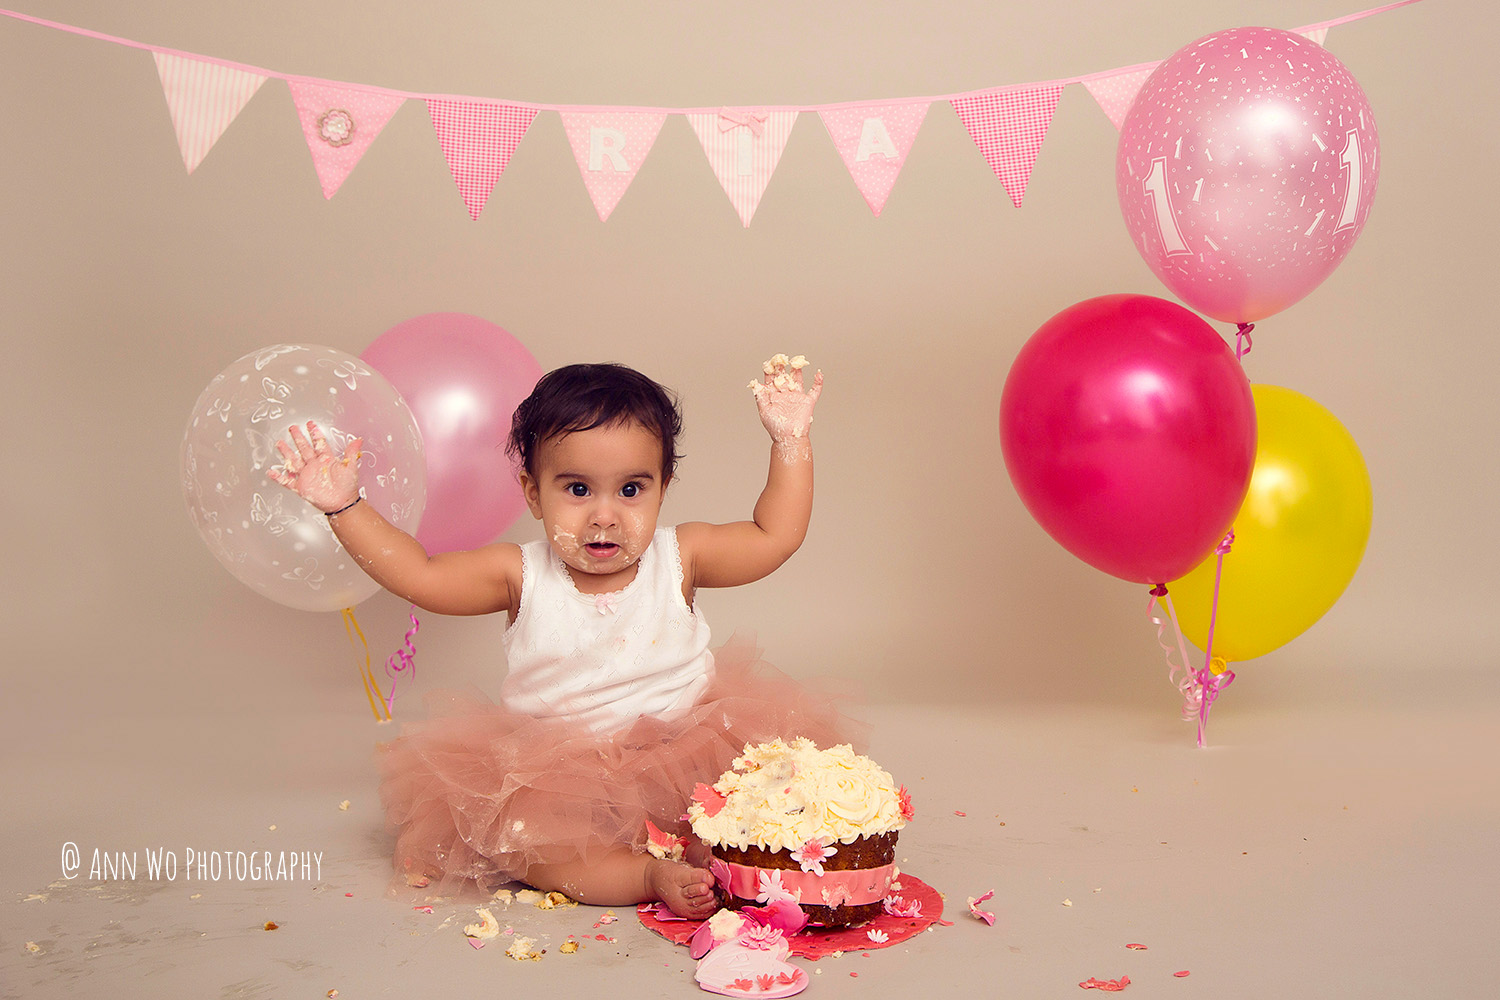 cake-smash-ria-london-baby-photographer22.jpg